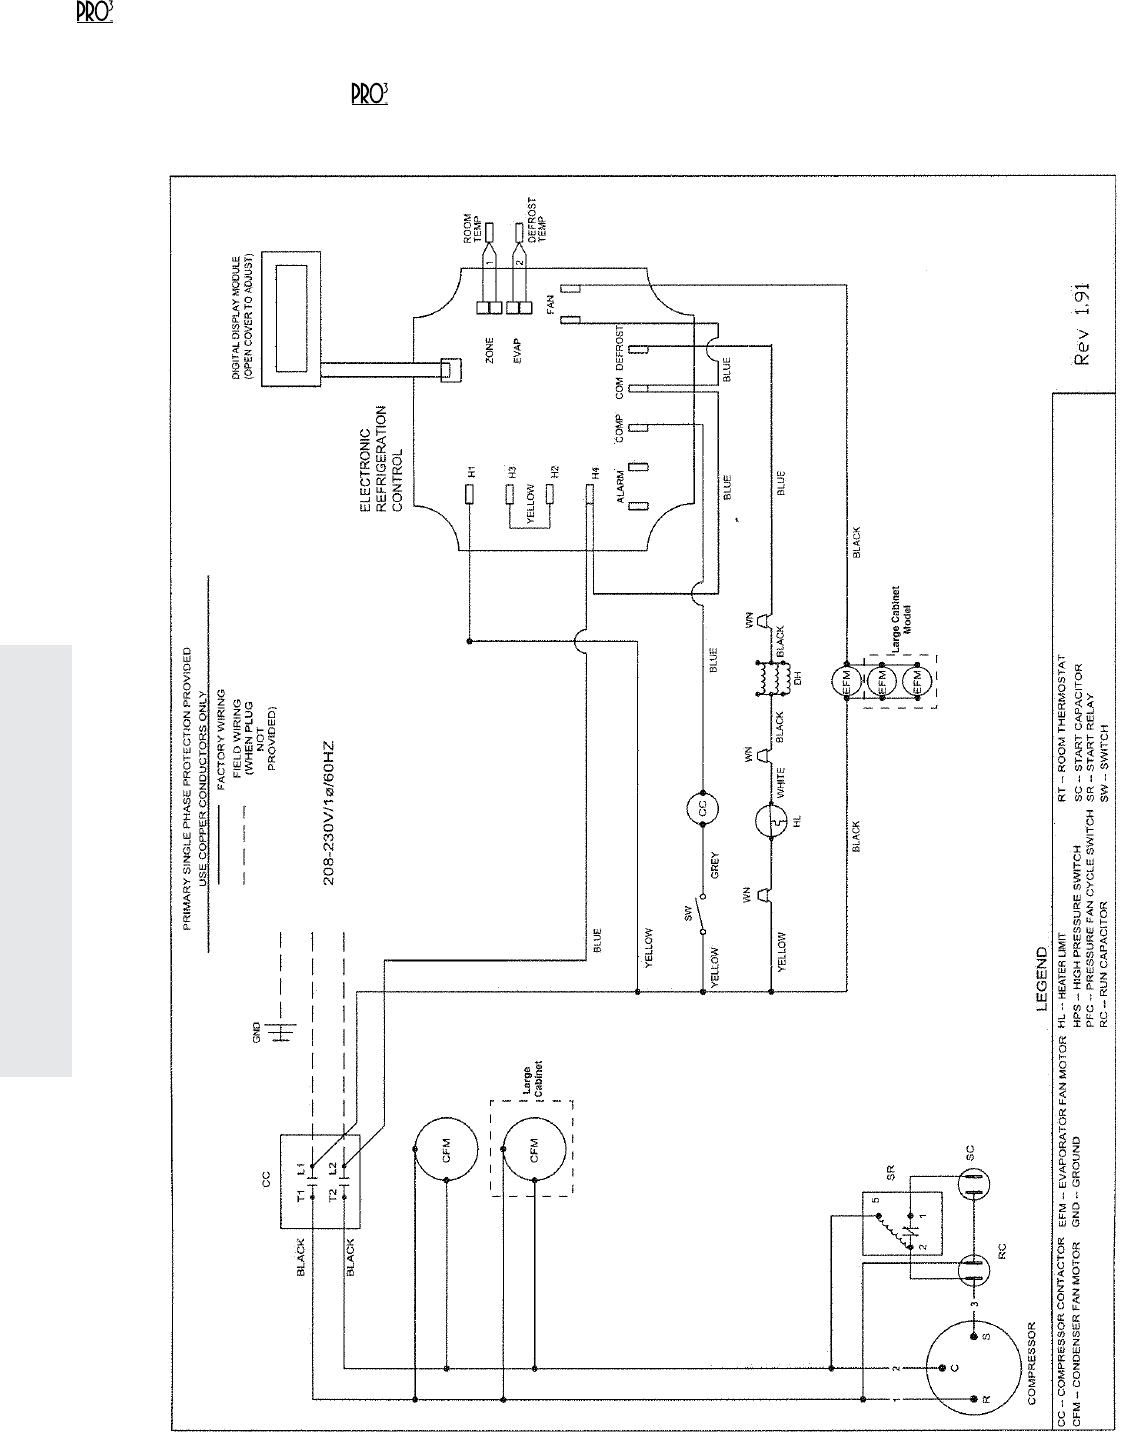 b8616a9a 7649 411a b648 d6245cba7e20 bg10 page 16 of heatcraft refrigeration products refrigerator h im 82b heatcraft freezer wiring diagram at bayanpartner.co